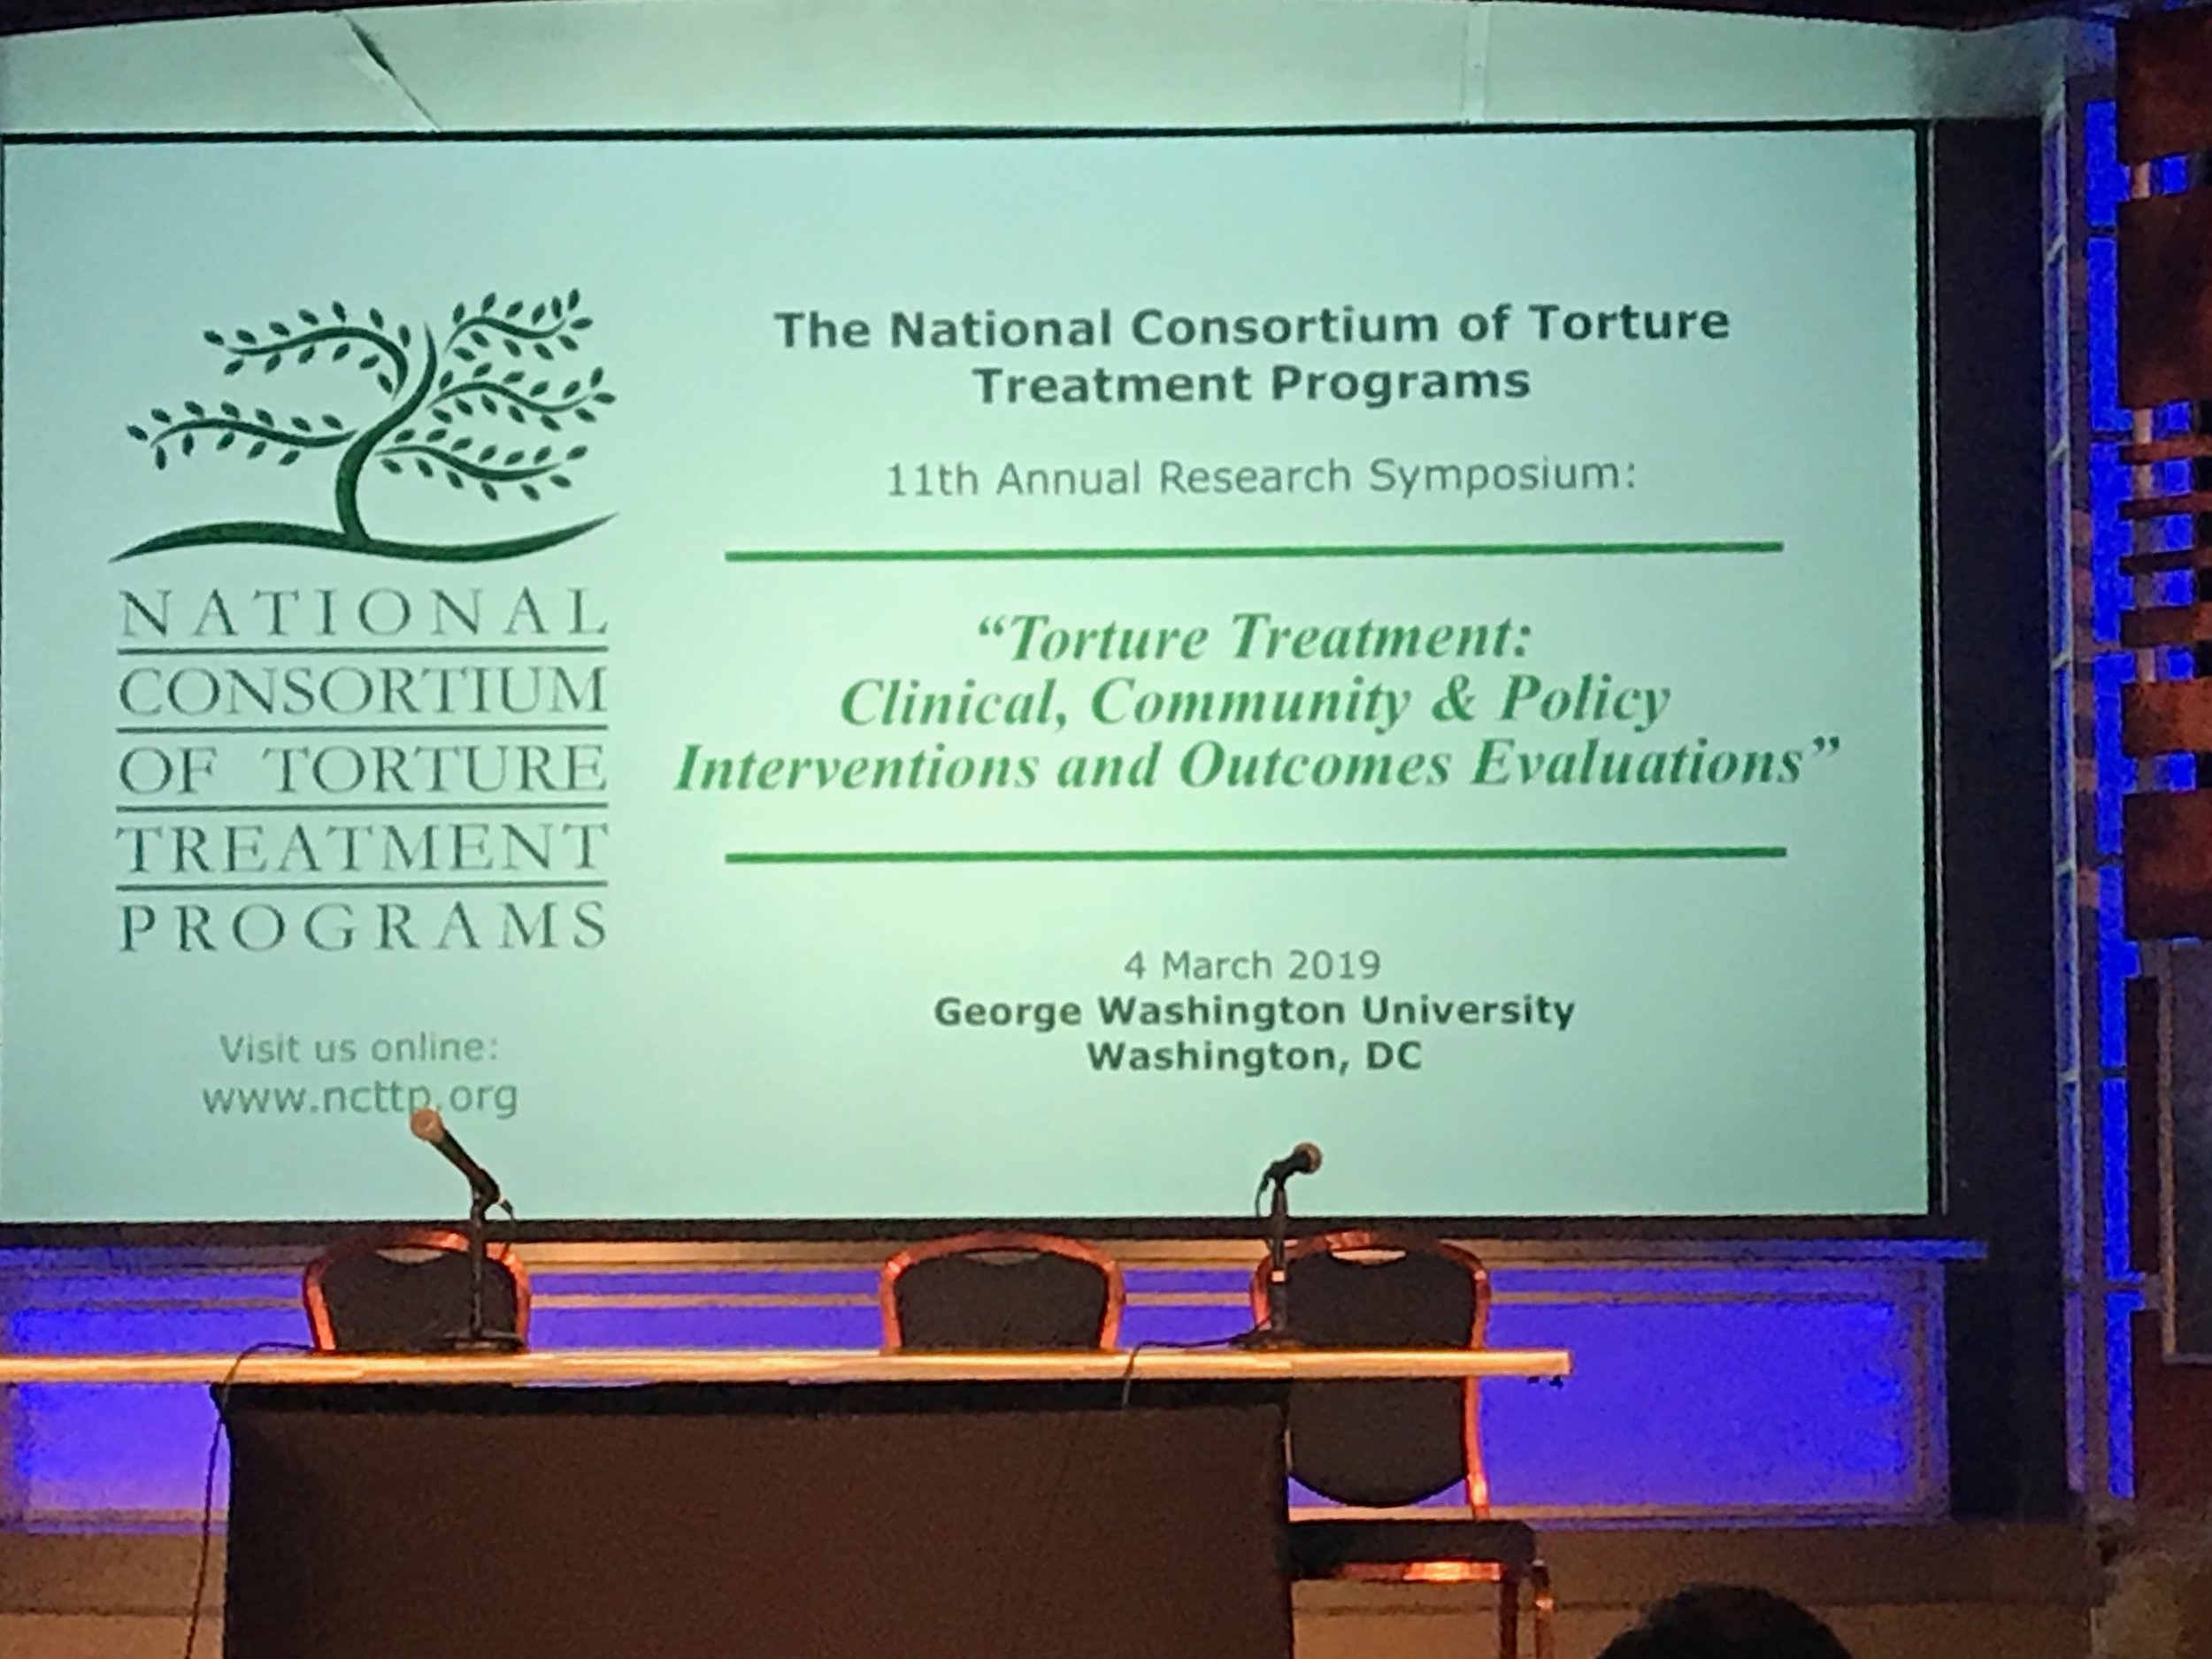 The National Consortium of Torture Treatment Programs 11th Annual Research Symposium  was held at George Washington University .